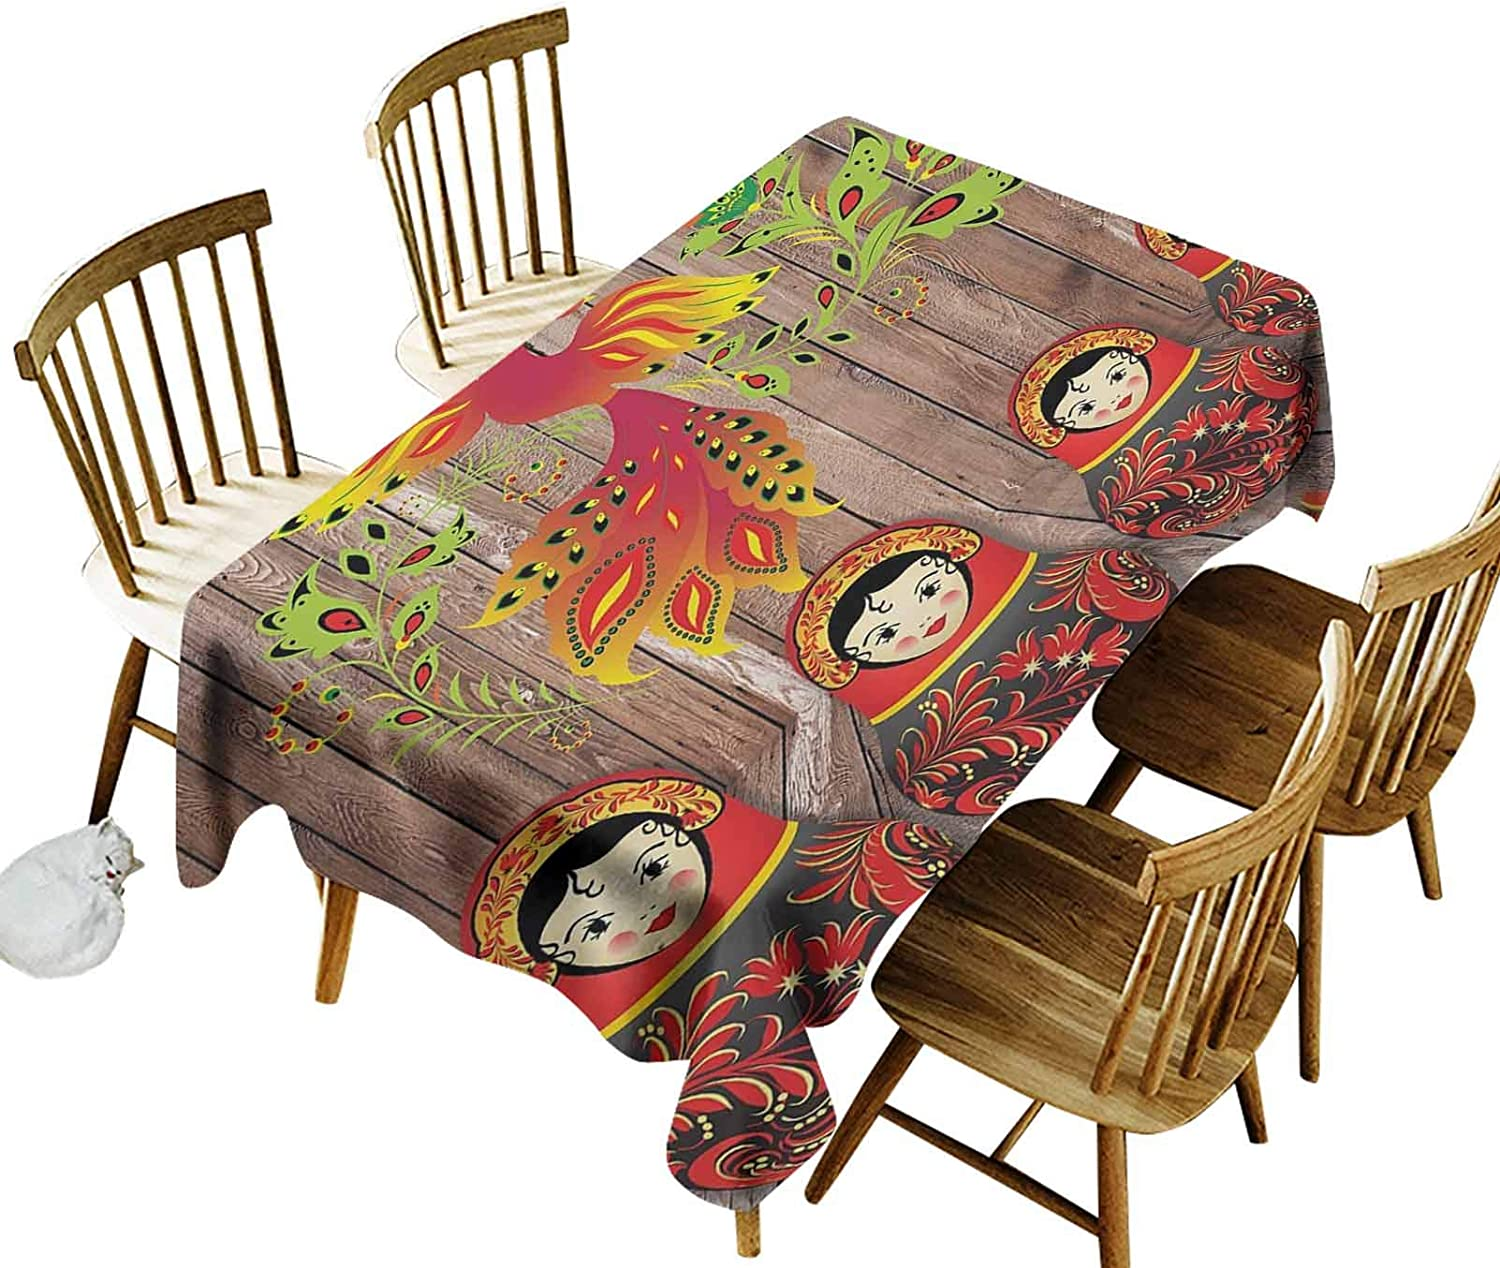 Decorative Tablecloth Rustic Decor Russian Matryoshka Dolls on Wooden Planks Gifts for Her Beautiful Peacock Bird Decoration Lover Traveler Design for Kitchen Wedding Parties 60x84 Inch